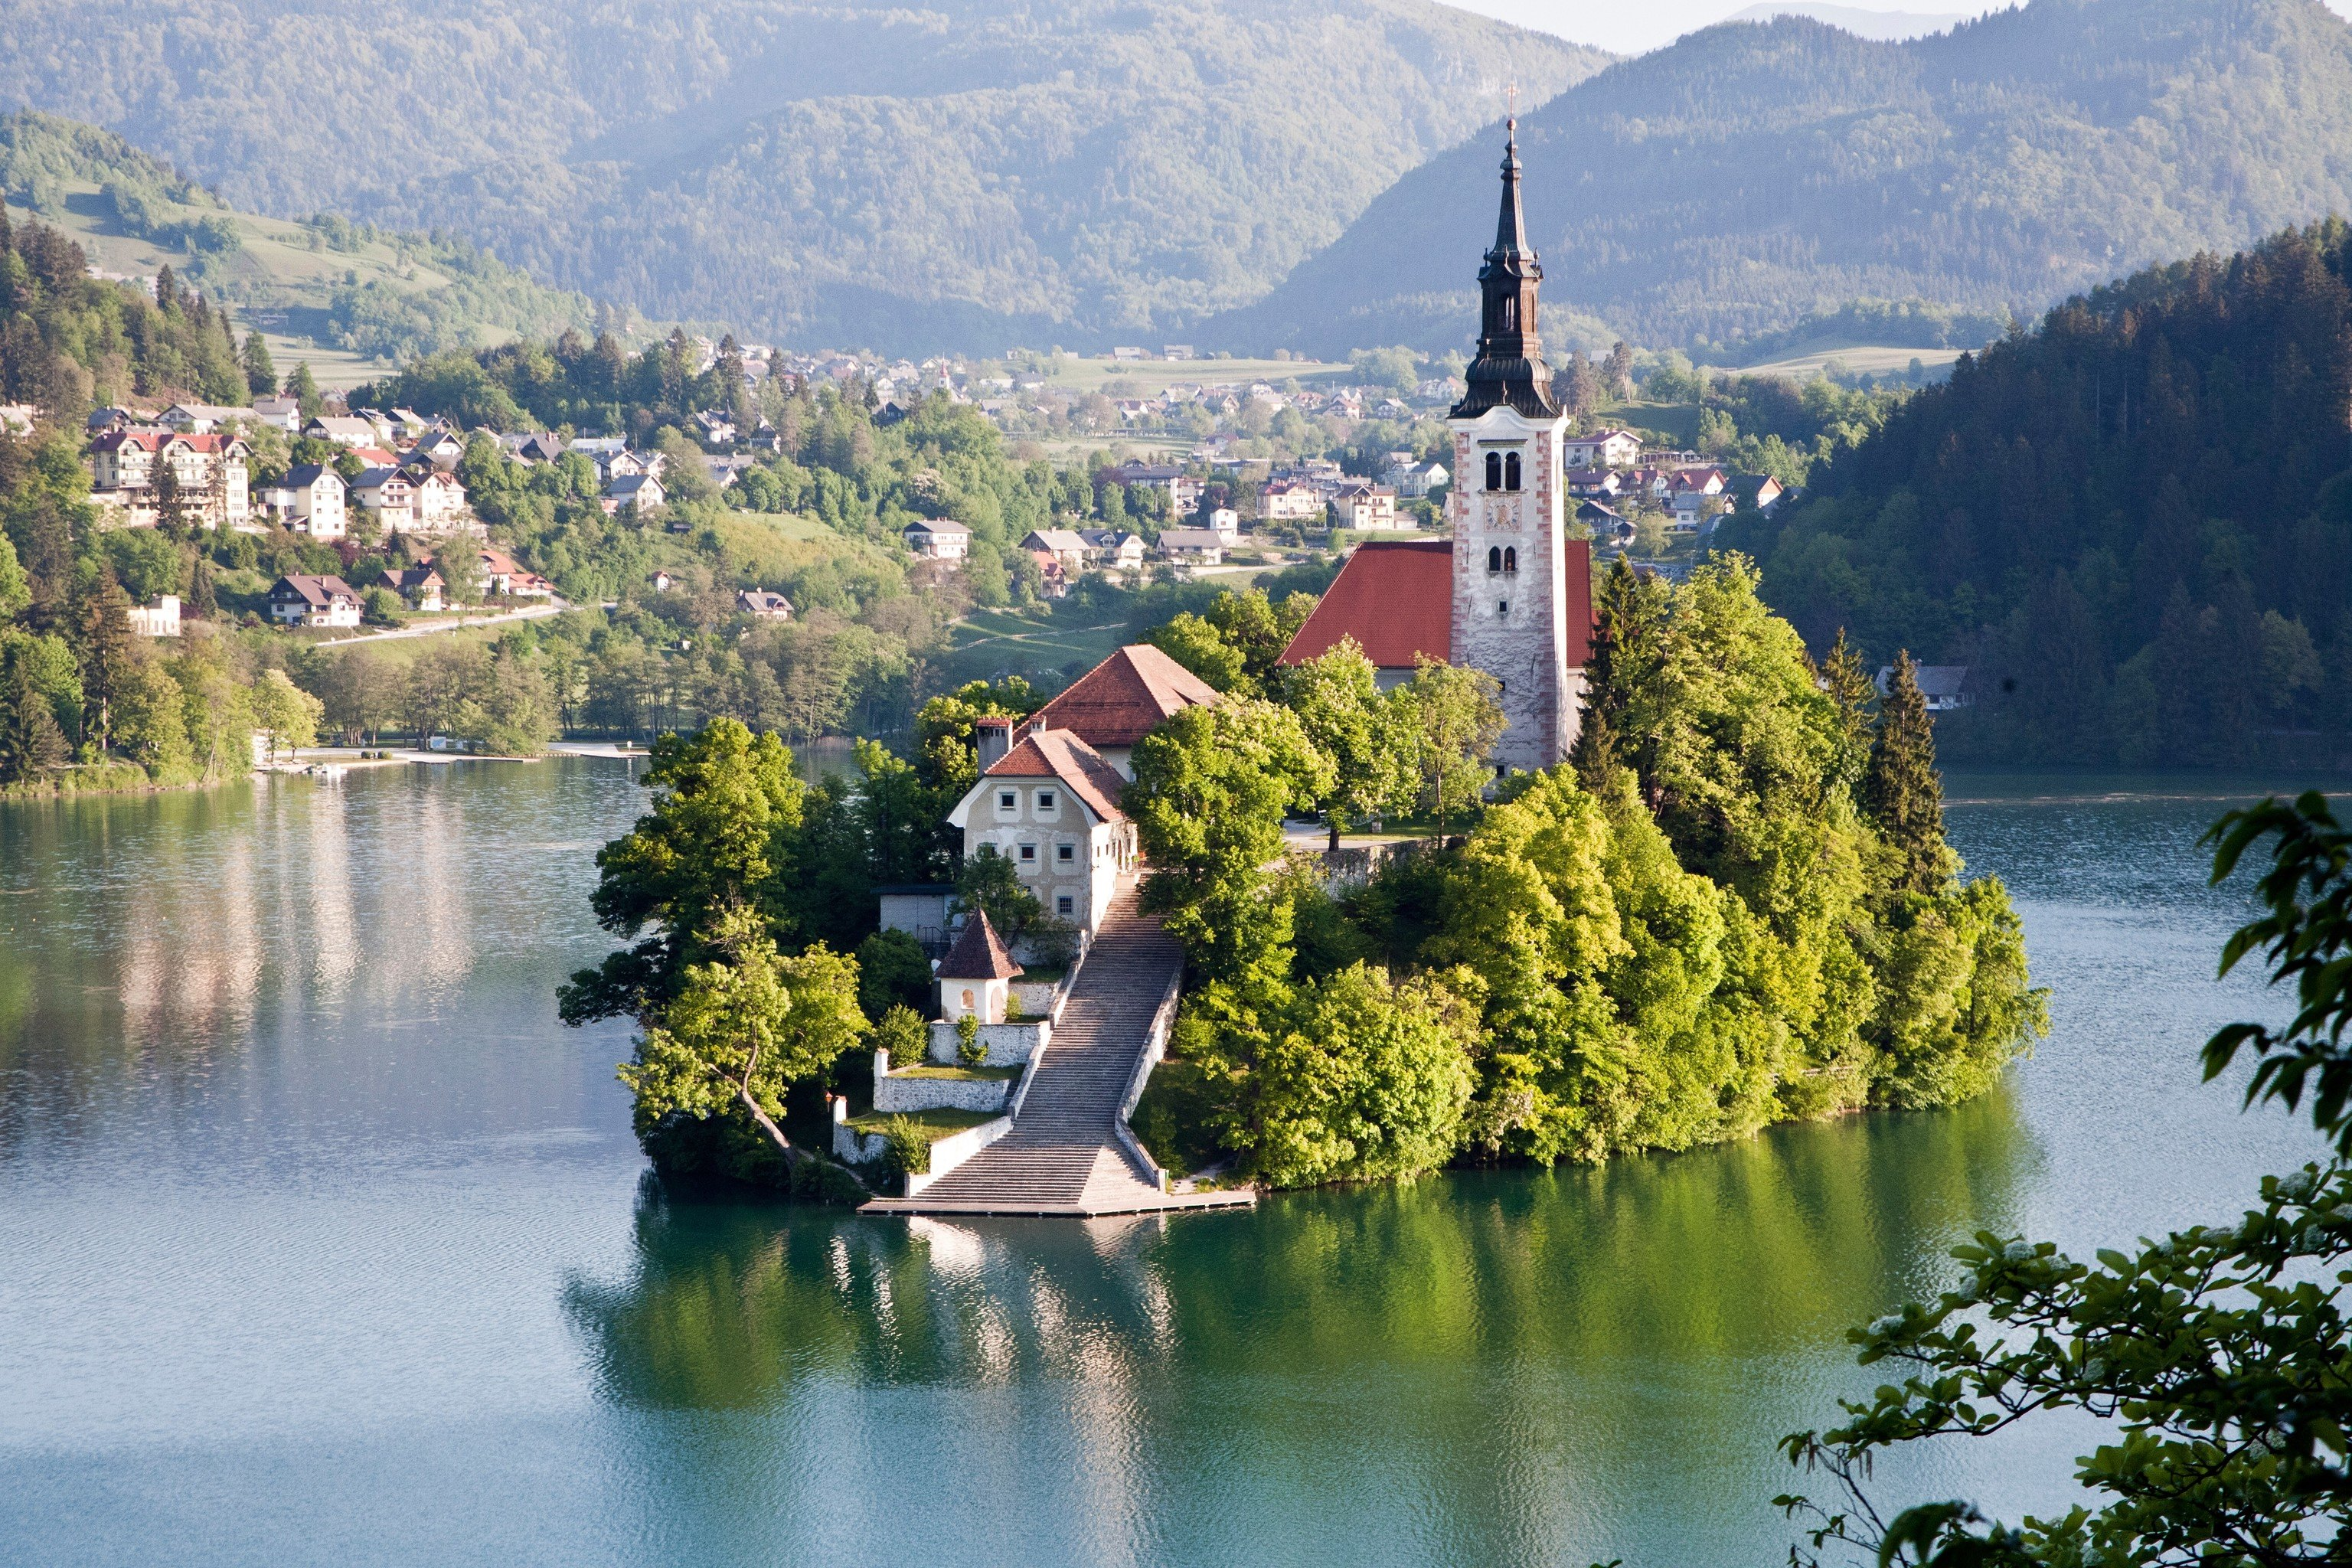 Trip Ideas mountain water outdoor Lake tree Nature River reflection flower mountain range tourism background surrounded château fjord alps reservoir park traveling Town hillside